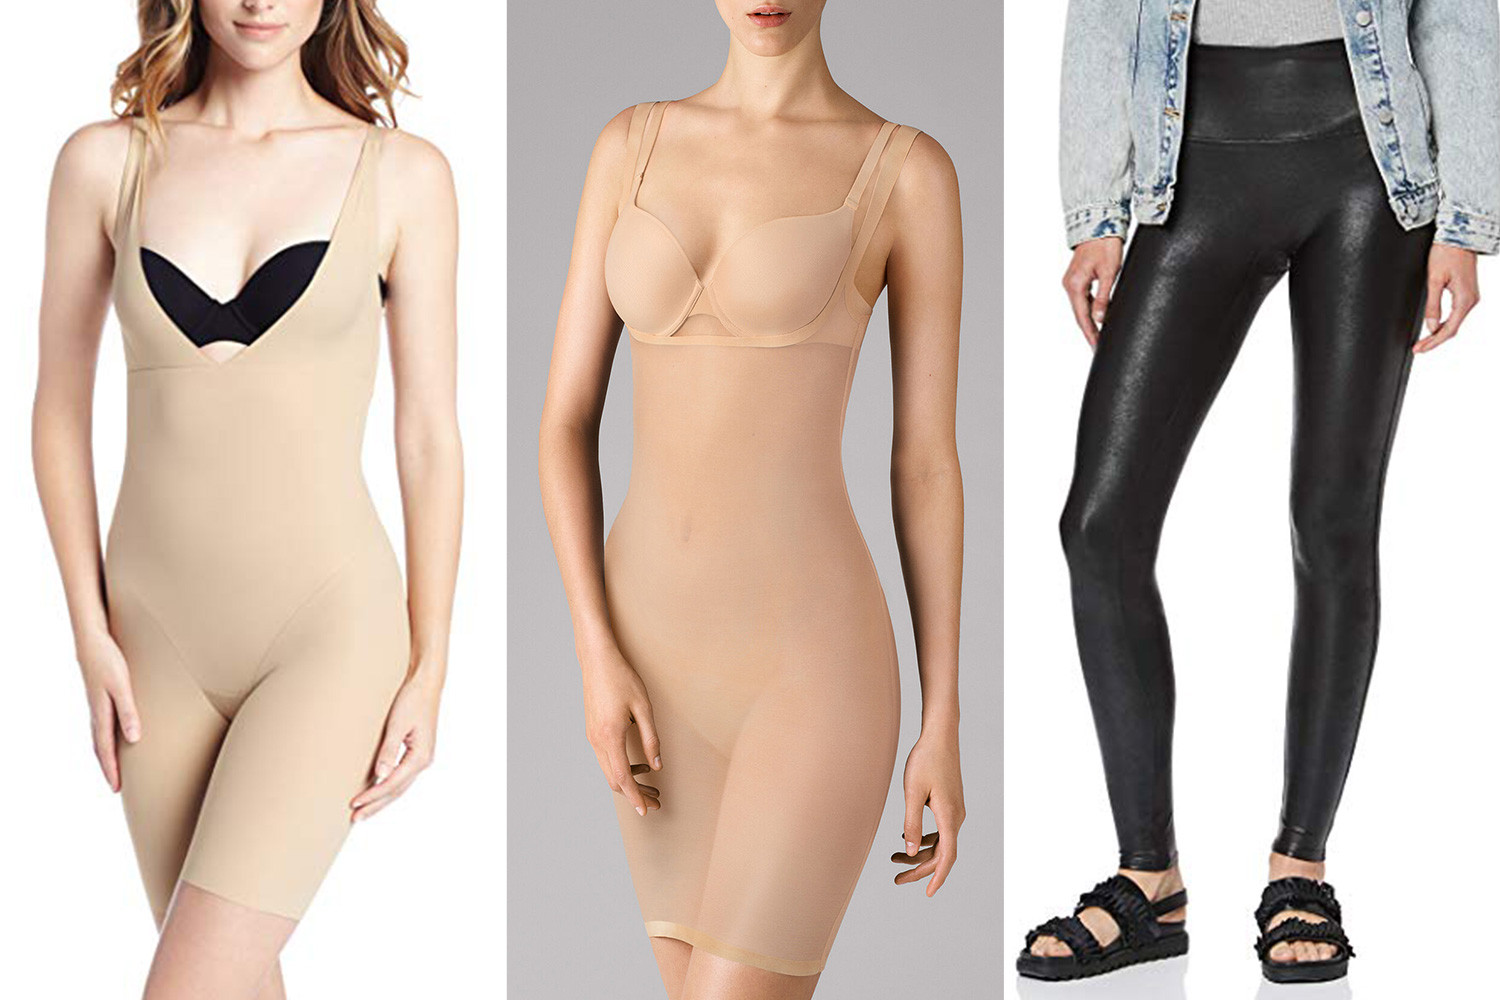 Why Should Women Avoid Body Shape Wears at all Costs